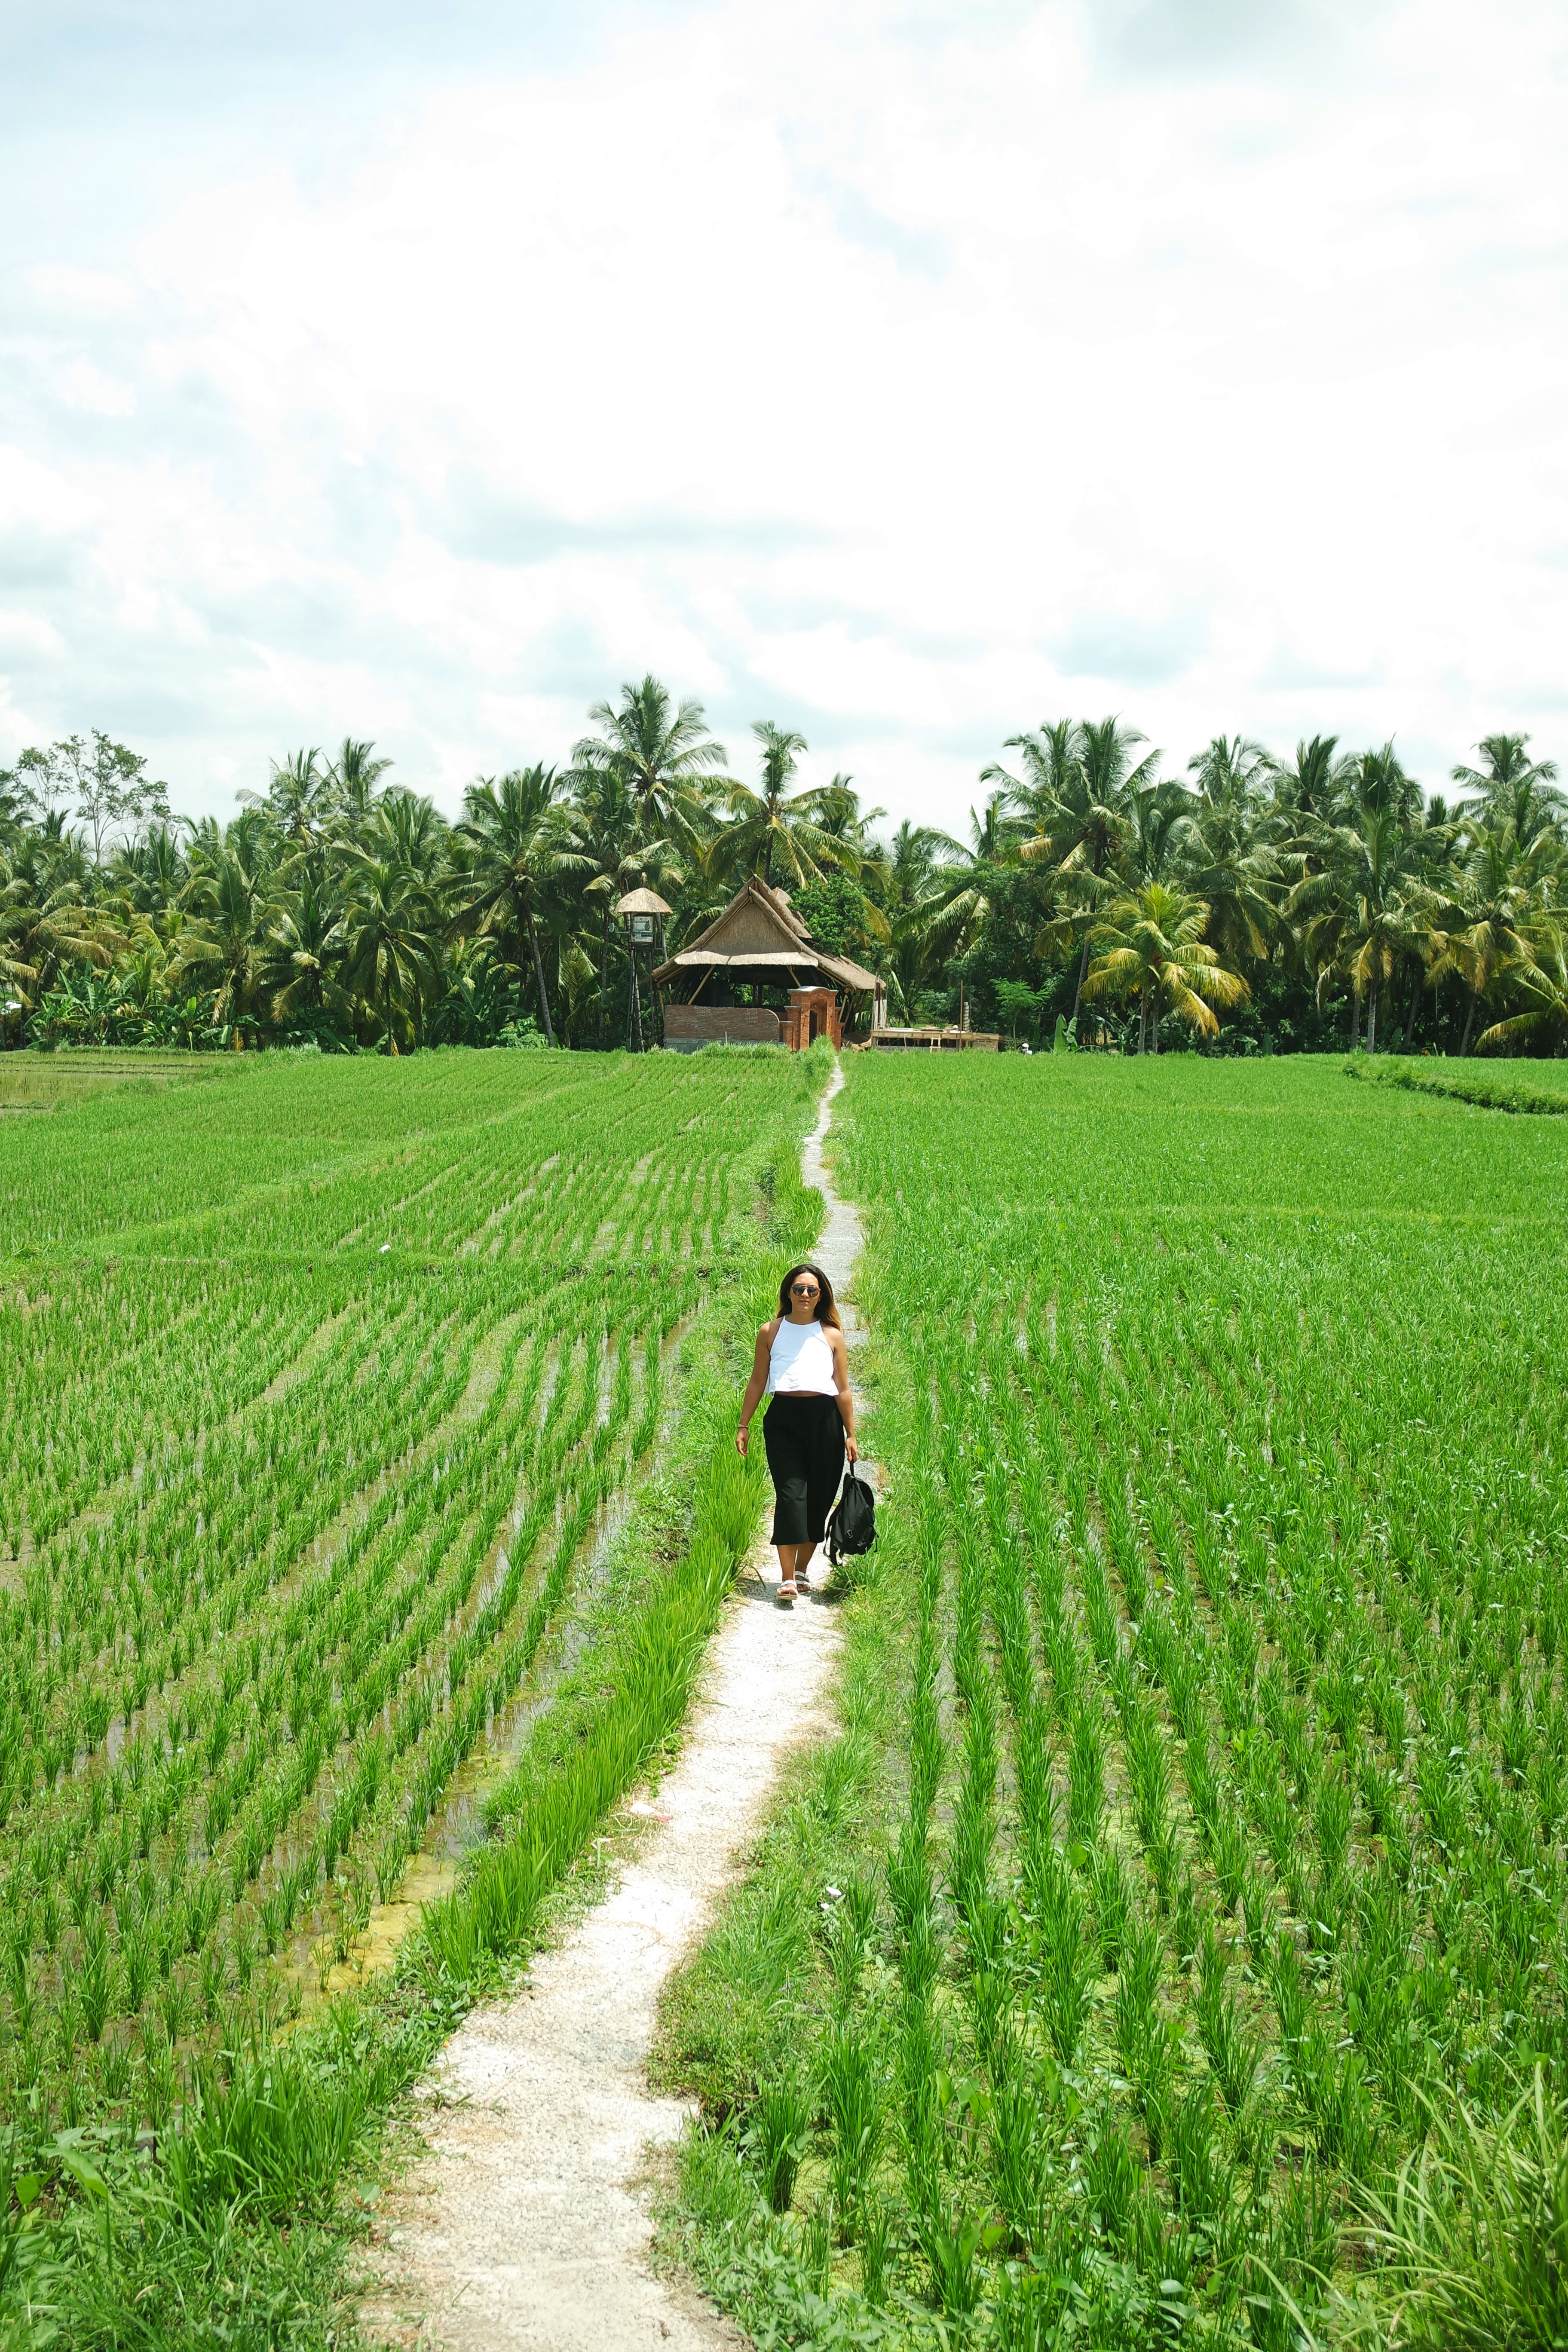 ubud-bali-choss-à-faire-things-to-do-ricefield